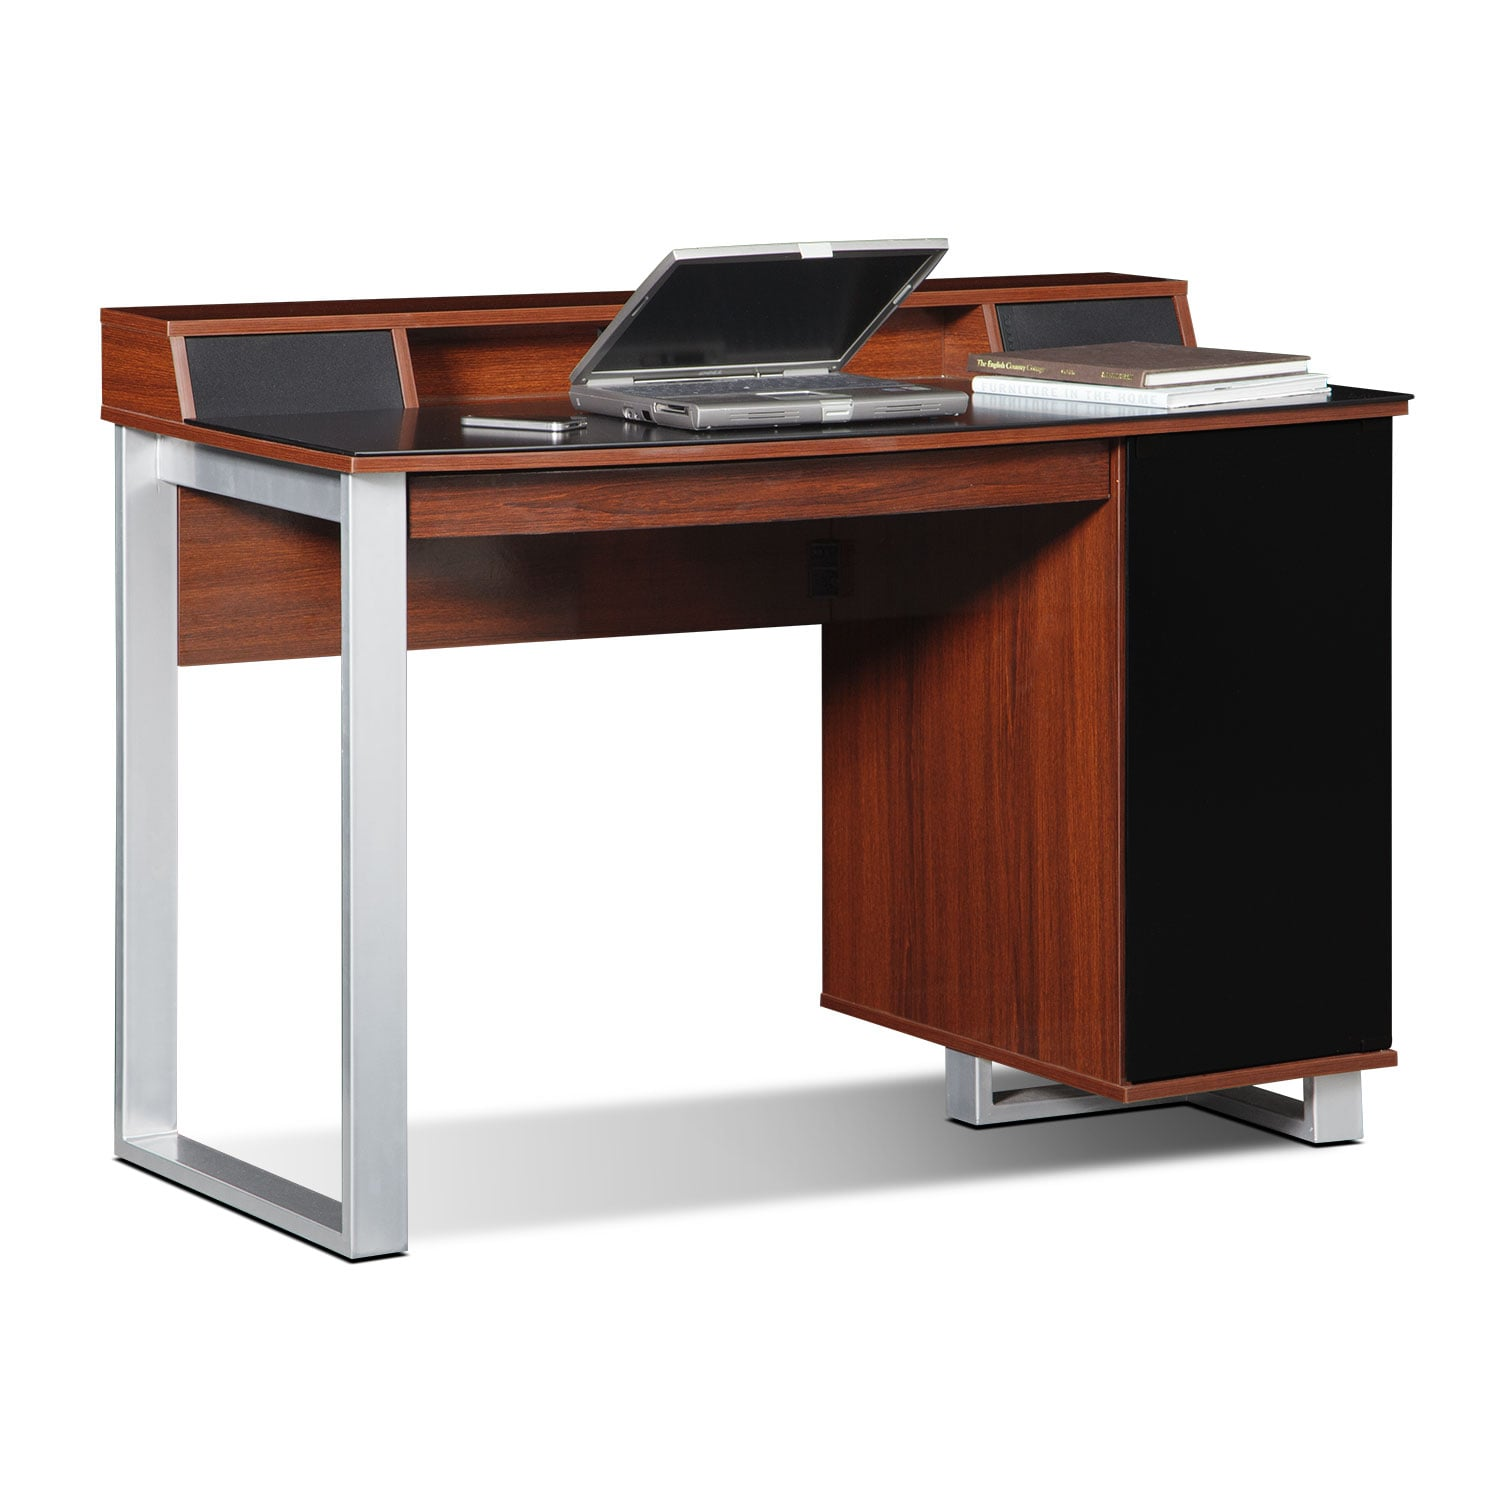 Home Office Furniture - Pacer Home Office Desk with Sound - Cherry